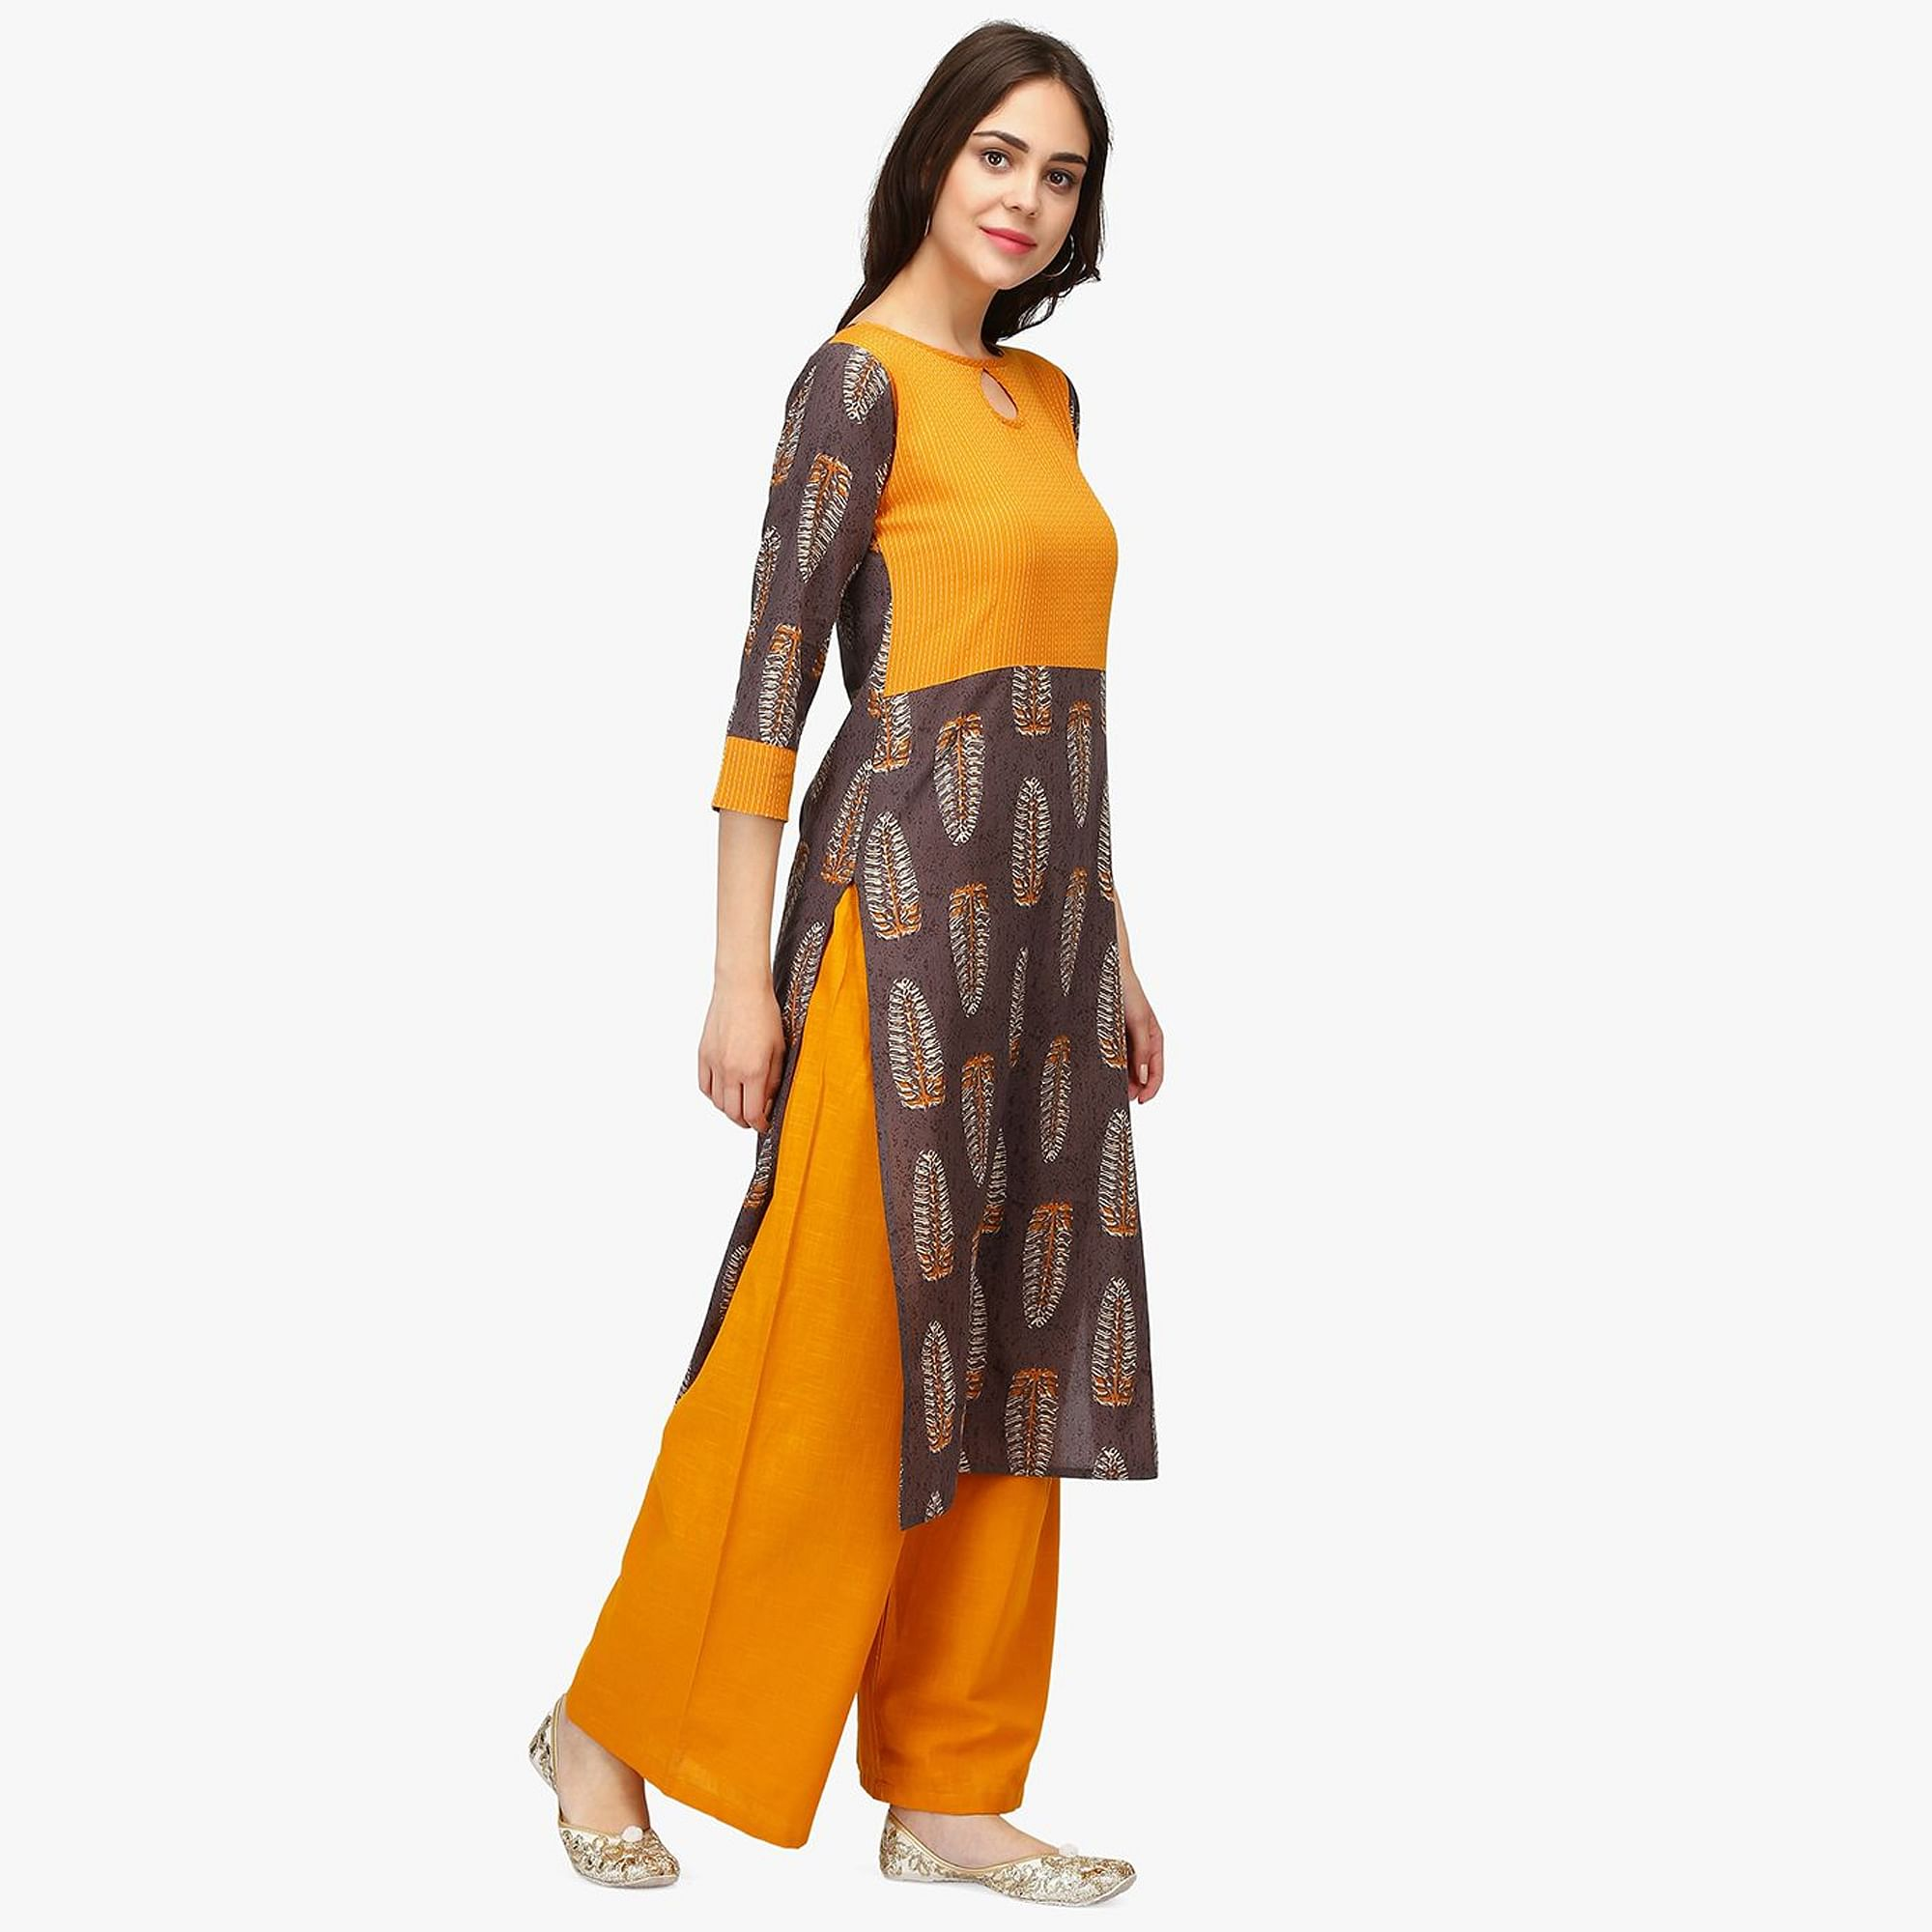 Imposing Brown-Orange Colored Casual Wear Floral Printed Calf Length Cambric Cotton Straight Kurti